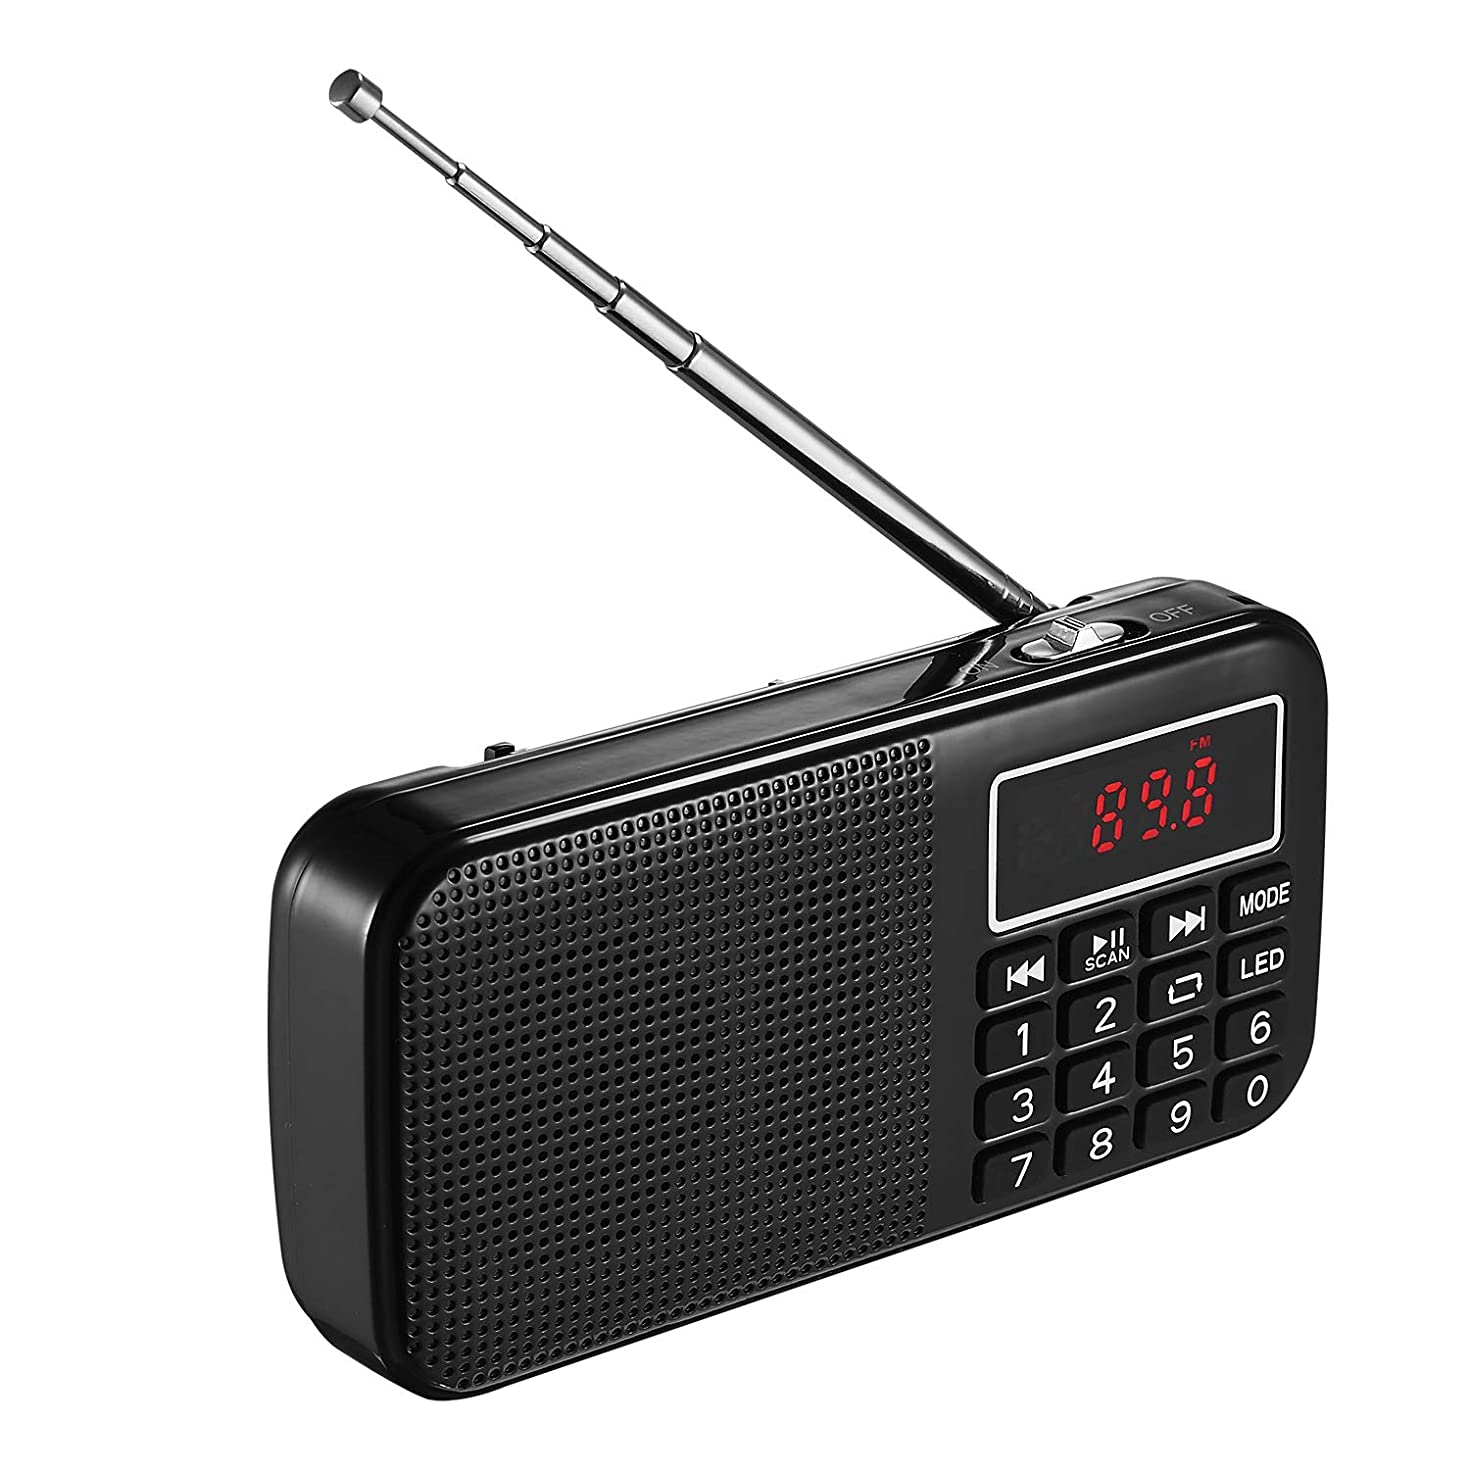 Portable FM Radio by PicoHemmo, Personal Mini Shortwave Pocket Radio Music Player, Supports AUX, 2Micro SD/TF Card Slot and USB Disk, with 3000mAh Rechargeable Li-ion Battery, Earphone Jack(Black)